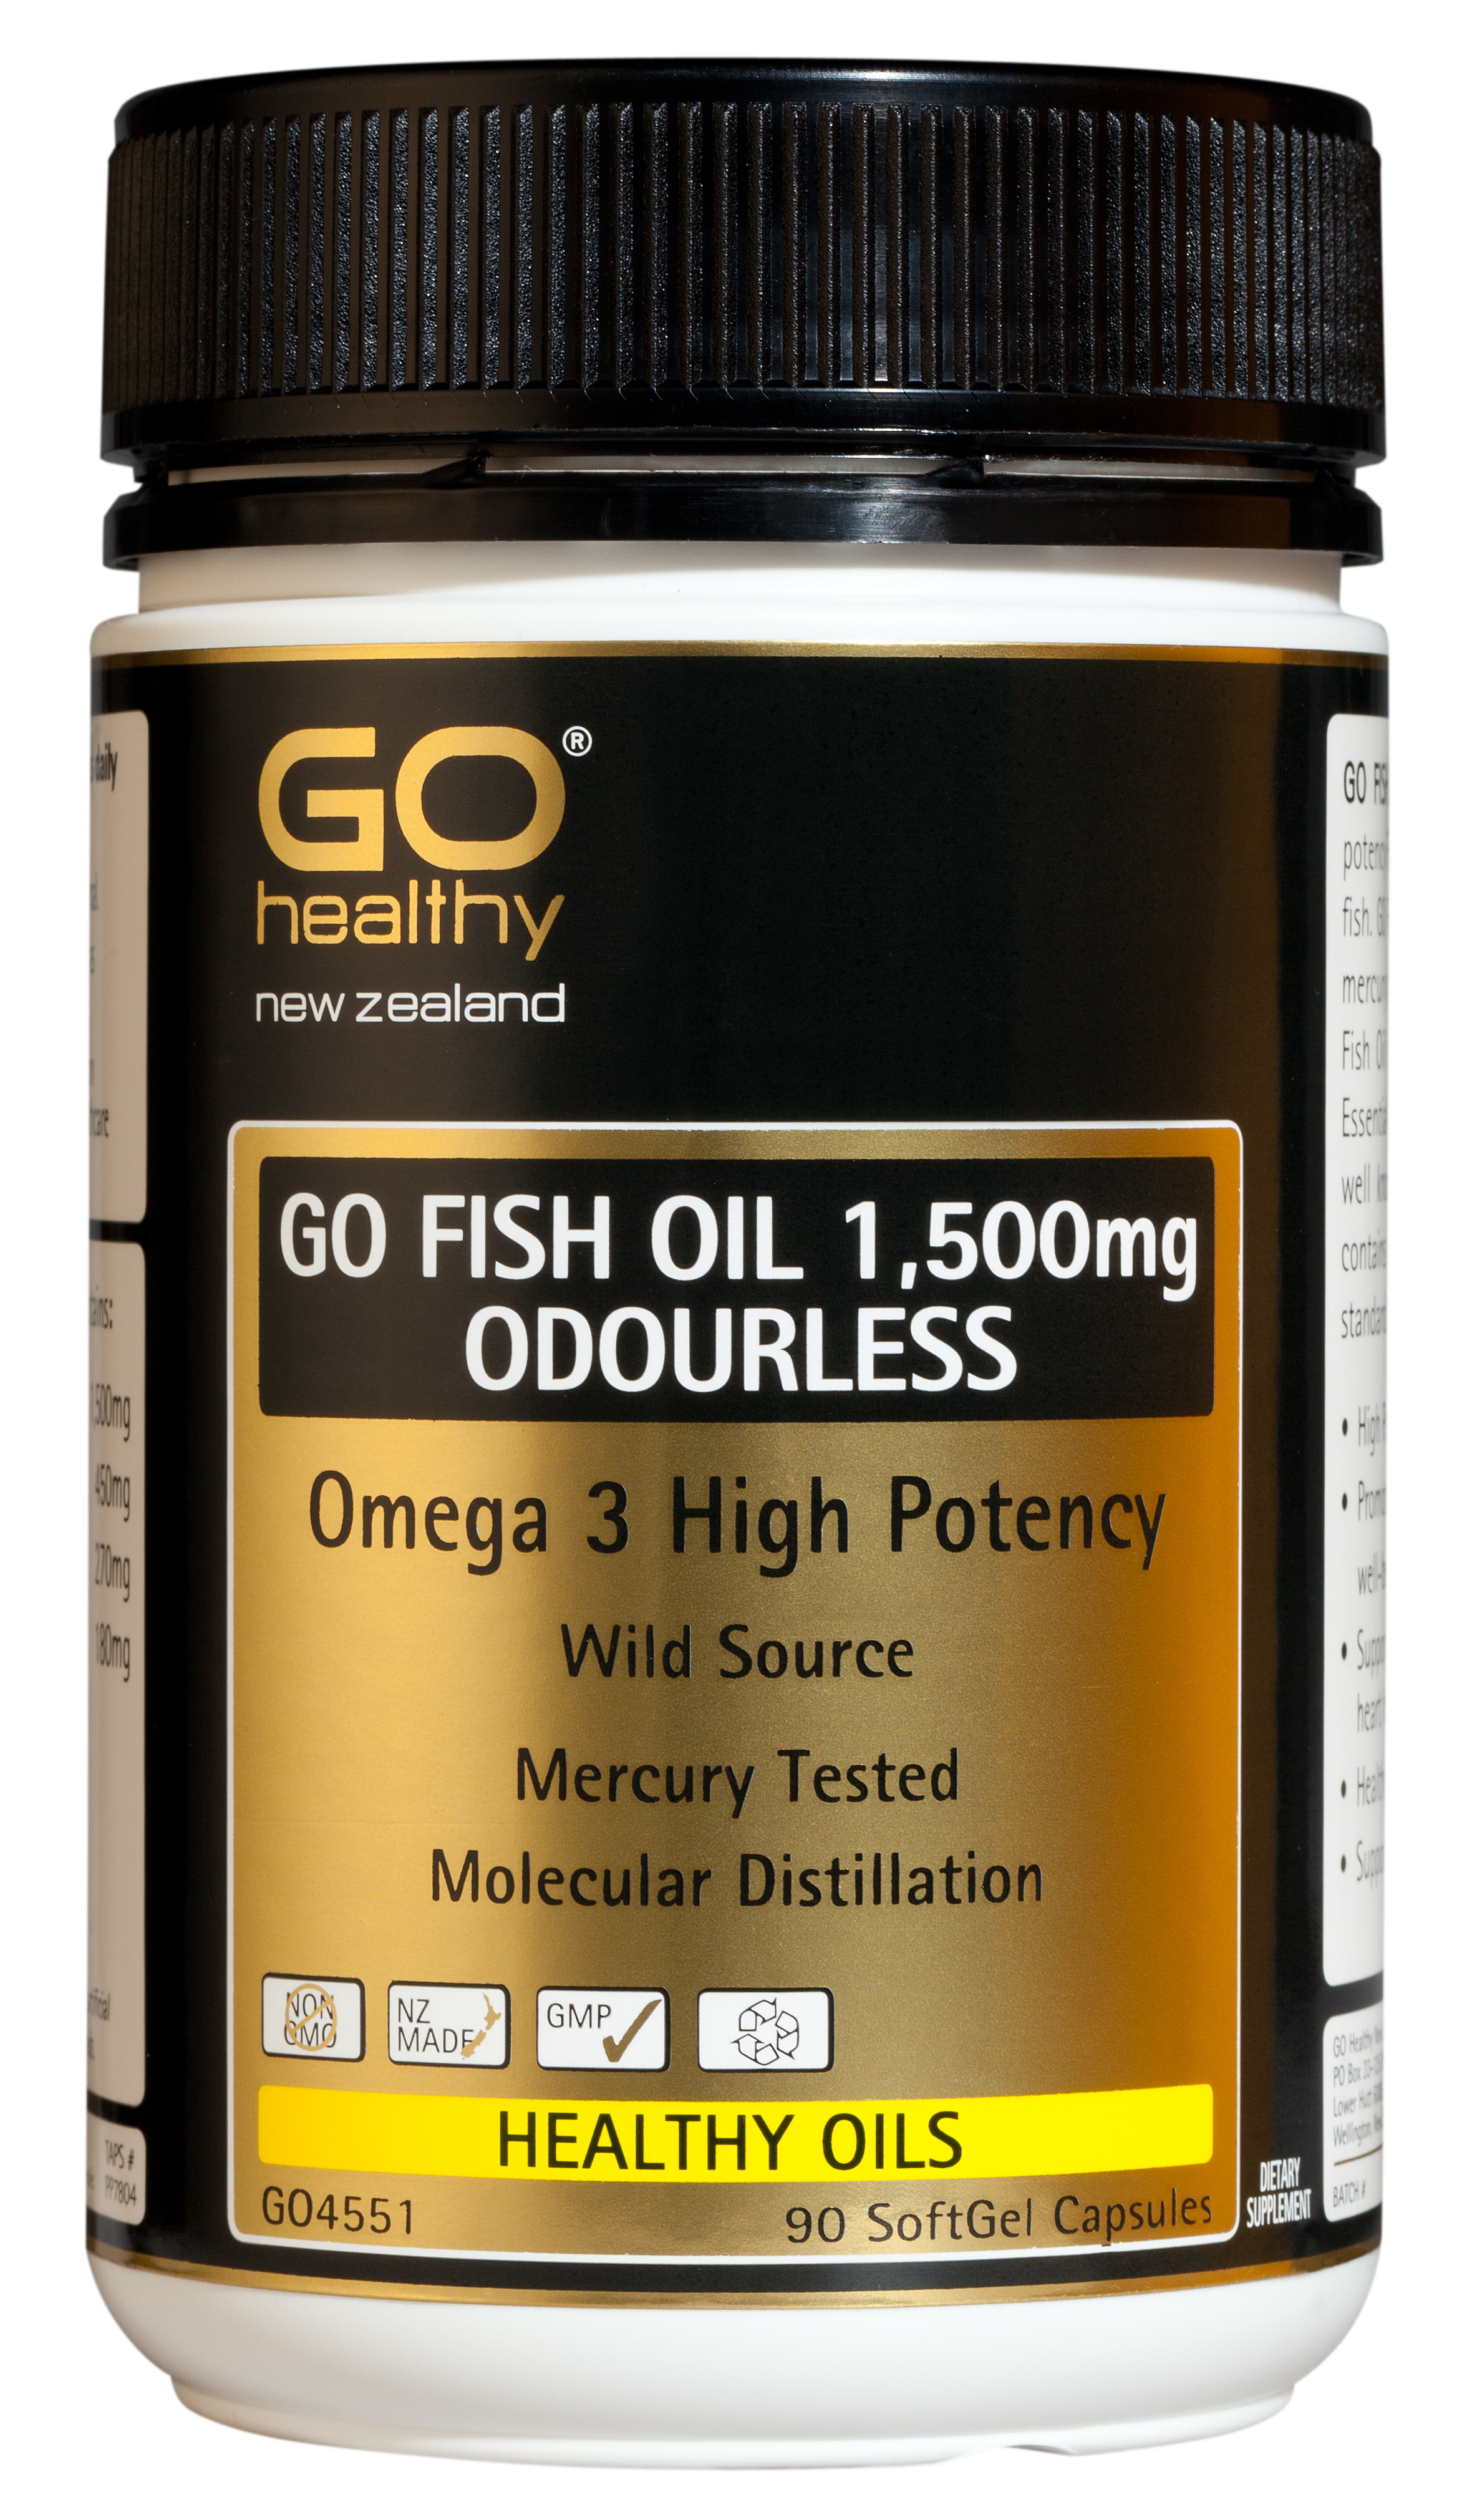 GO Healthy Fish Oil 1,500mg 210 Capsules